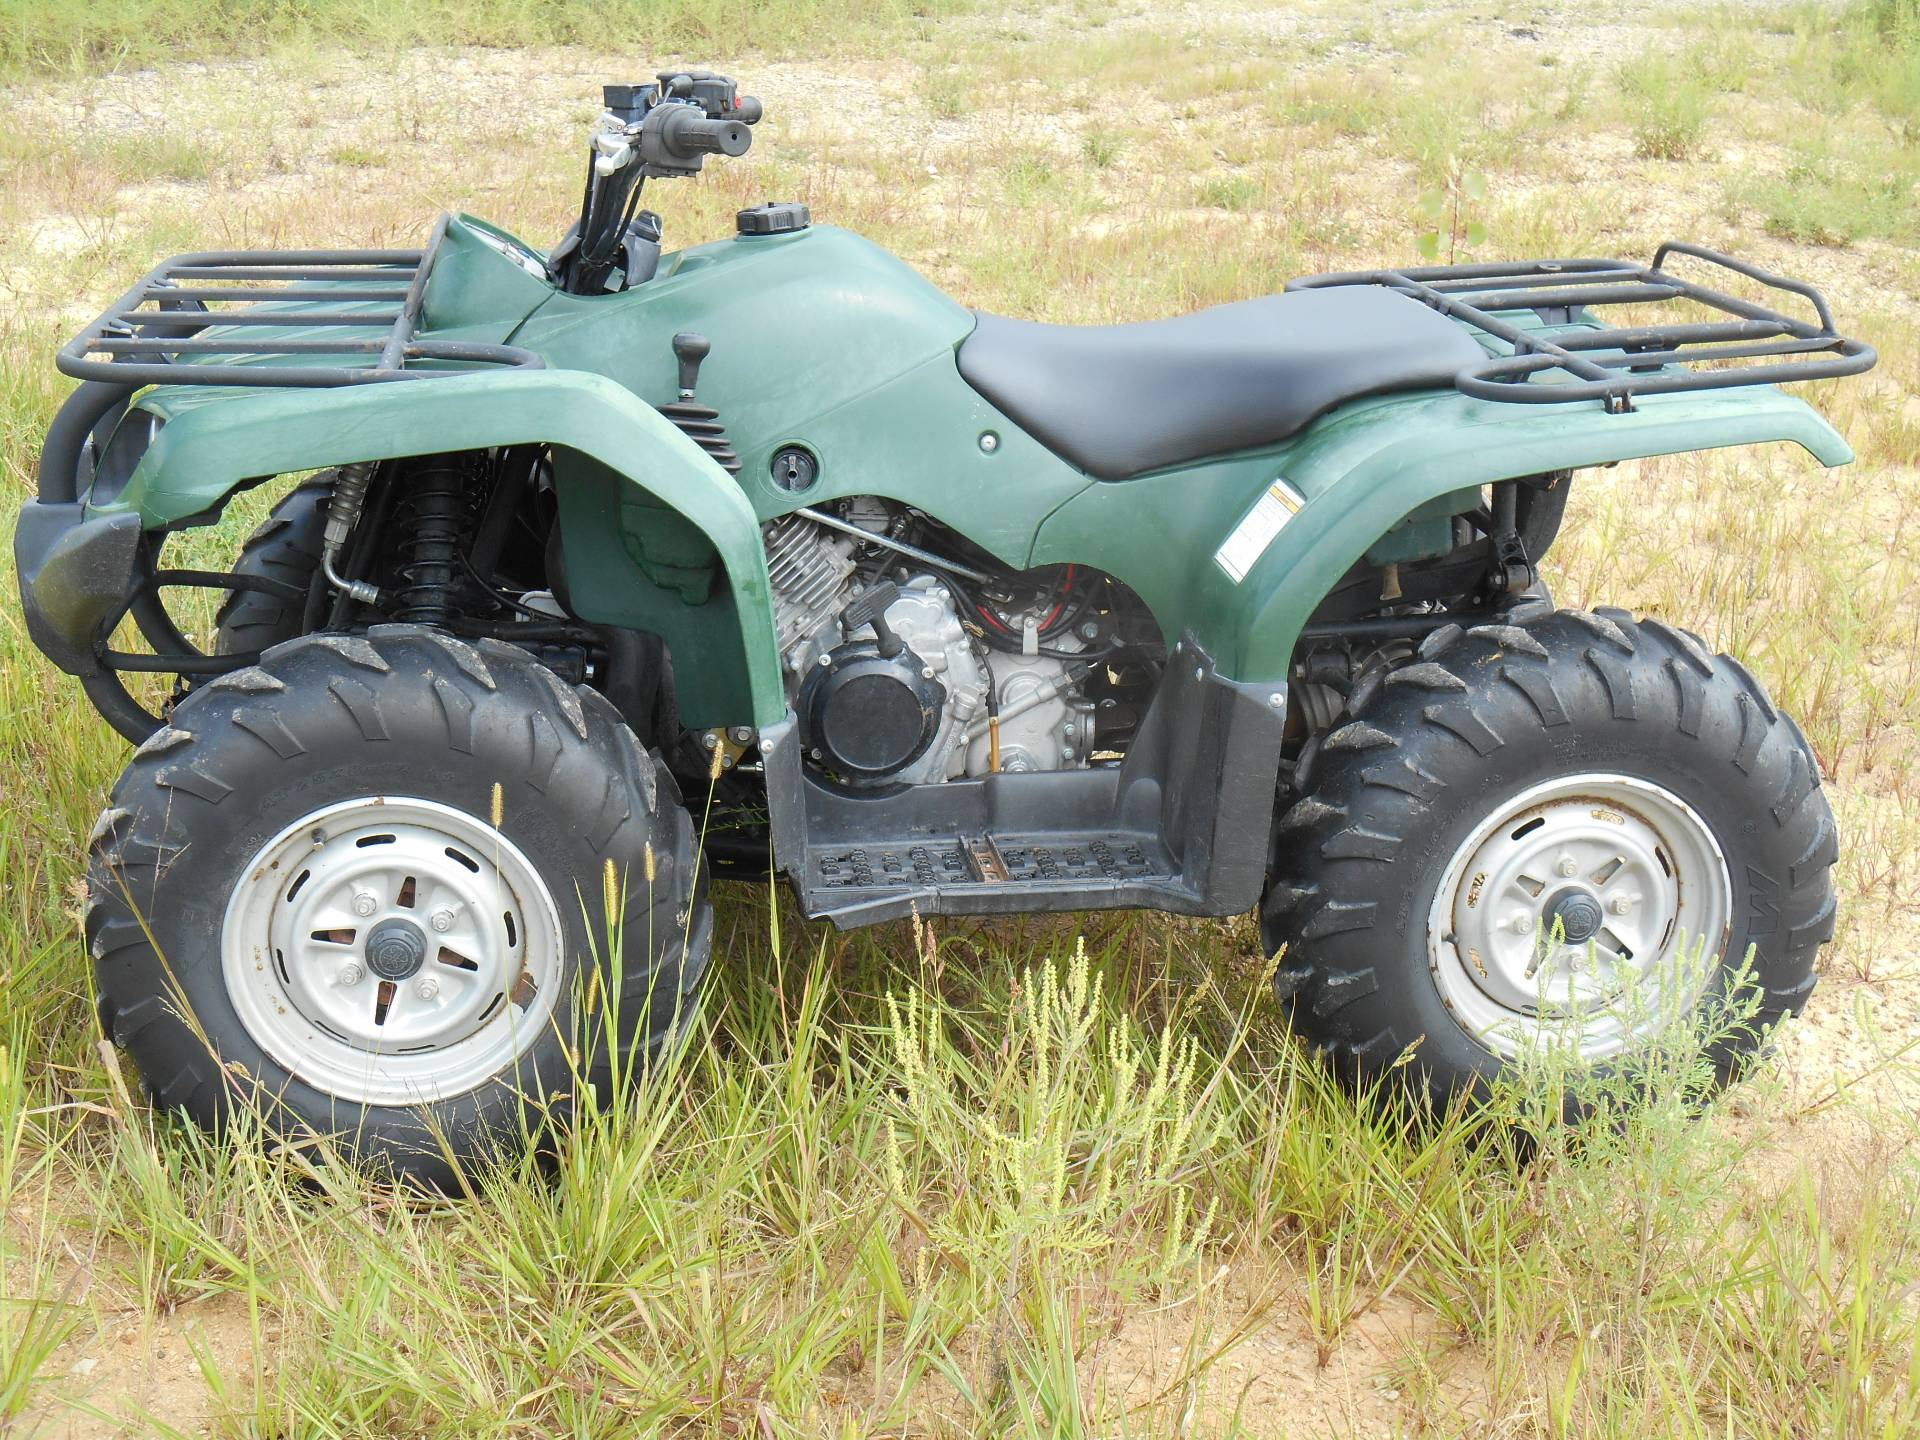 Used 2008 Yamaha Grizzly 350 IRS Auto. 4x4 ATVs in Dubuque, IA ...